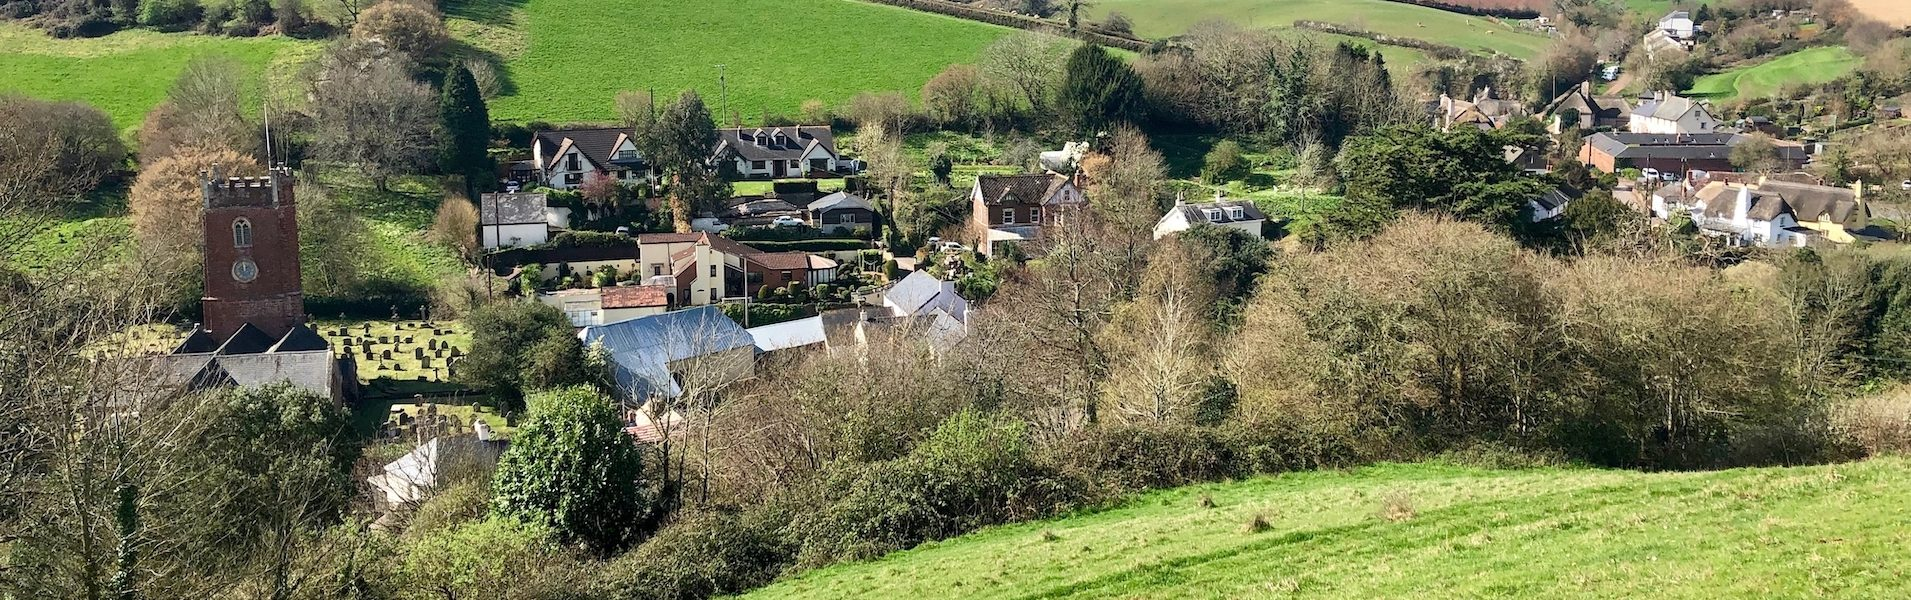 Haccombe with Combe Parish Council